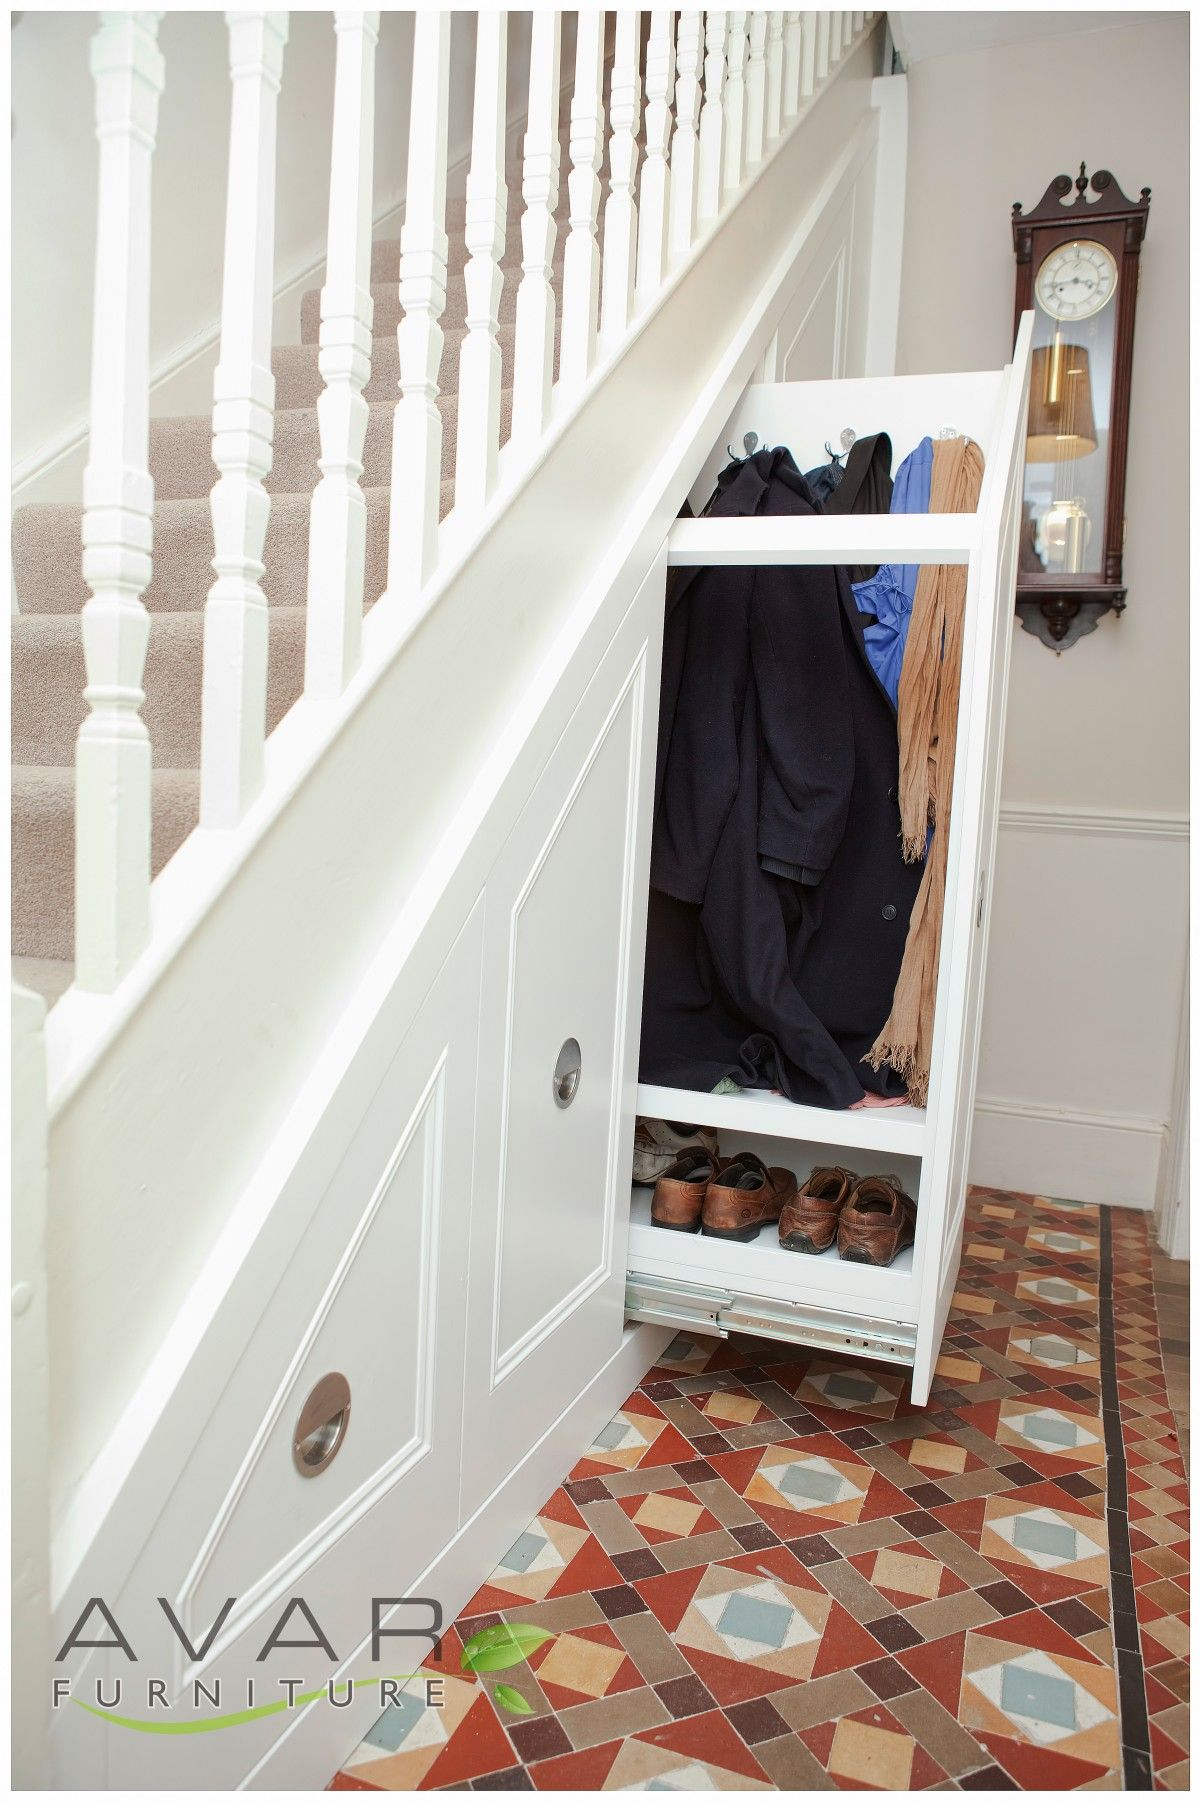 Portrayal Of Cupboard Under The Stairs Arrangement Under Stairs Cupboard Closet Under Stairs Understairs Storage